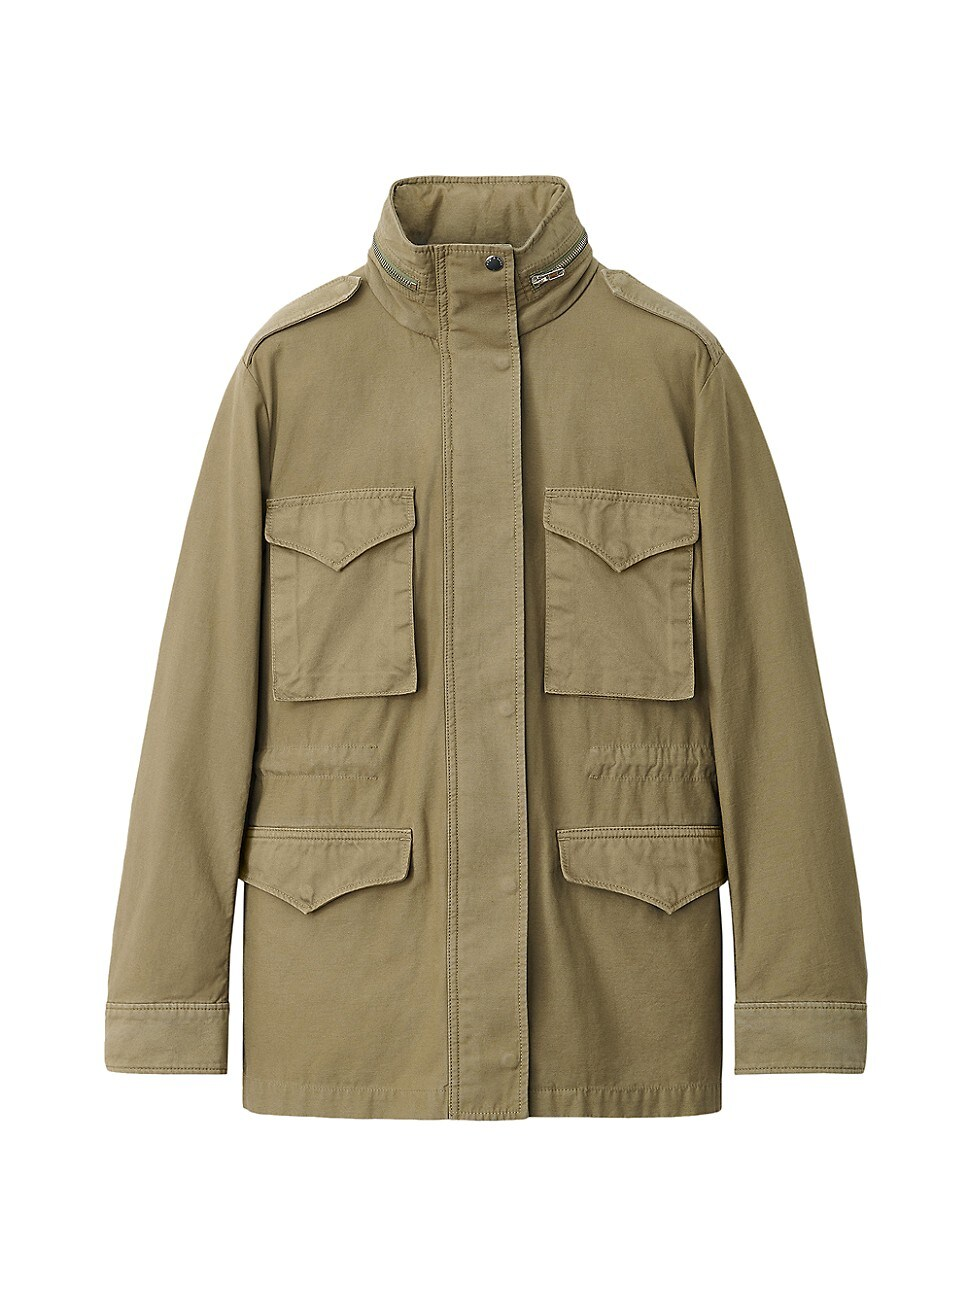 Rag & Bone Jackets WOMEN'S FIELD M65 JACKET